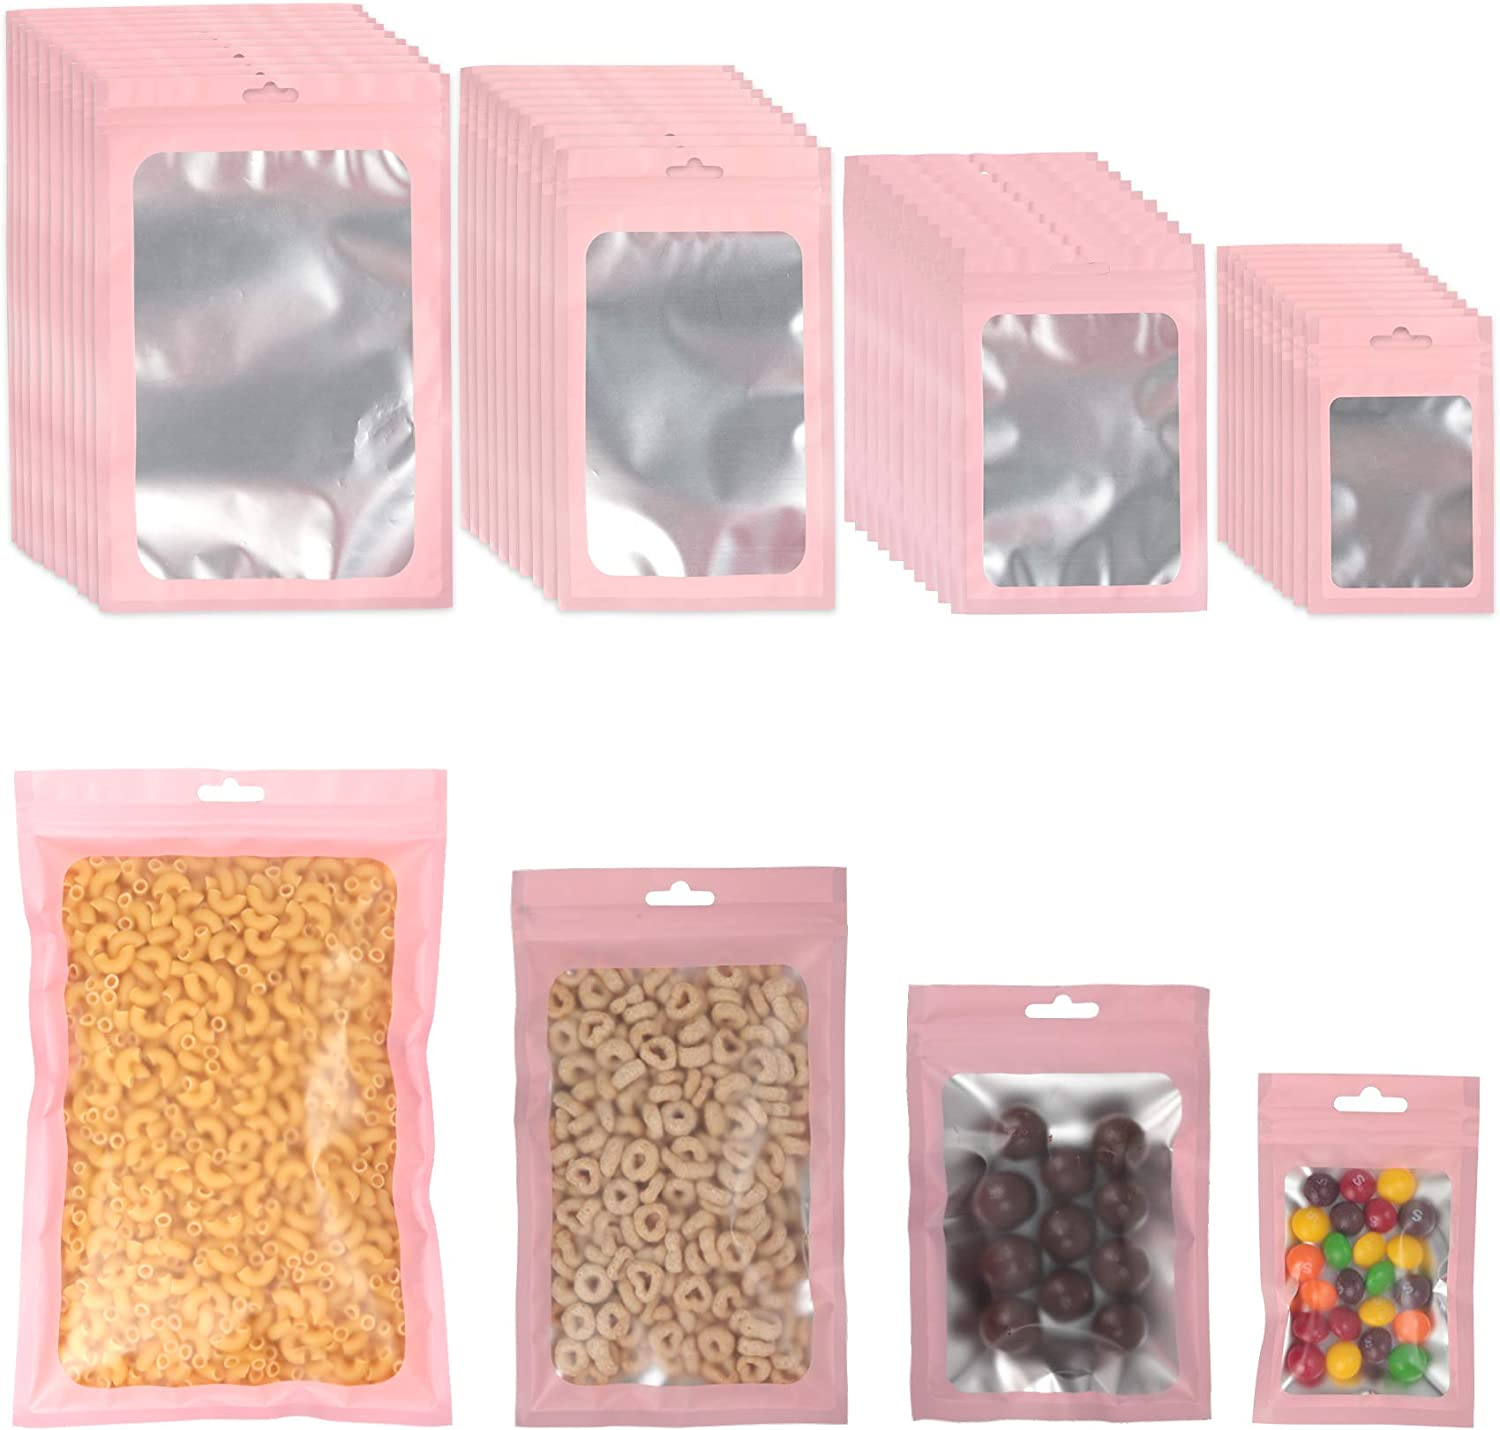 PUiKUS 100 PCS Reusable Mylar Bags ,Smell Proof Bags with Ziplock and Clear Window, for Candy and Food Packaging, Food Self Sealing Storage Supplie (Pink)